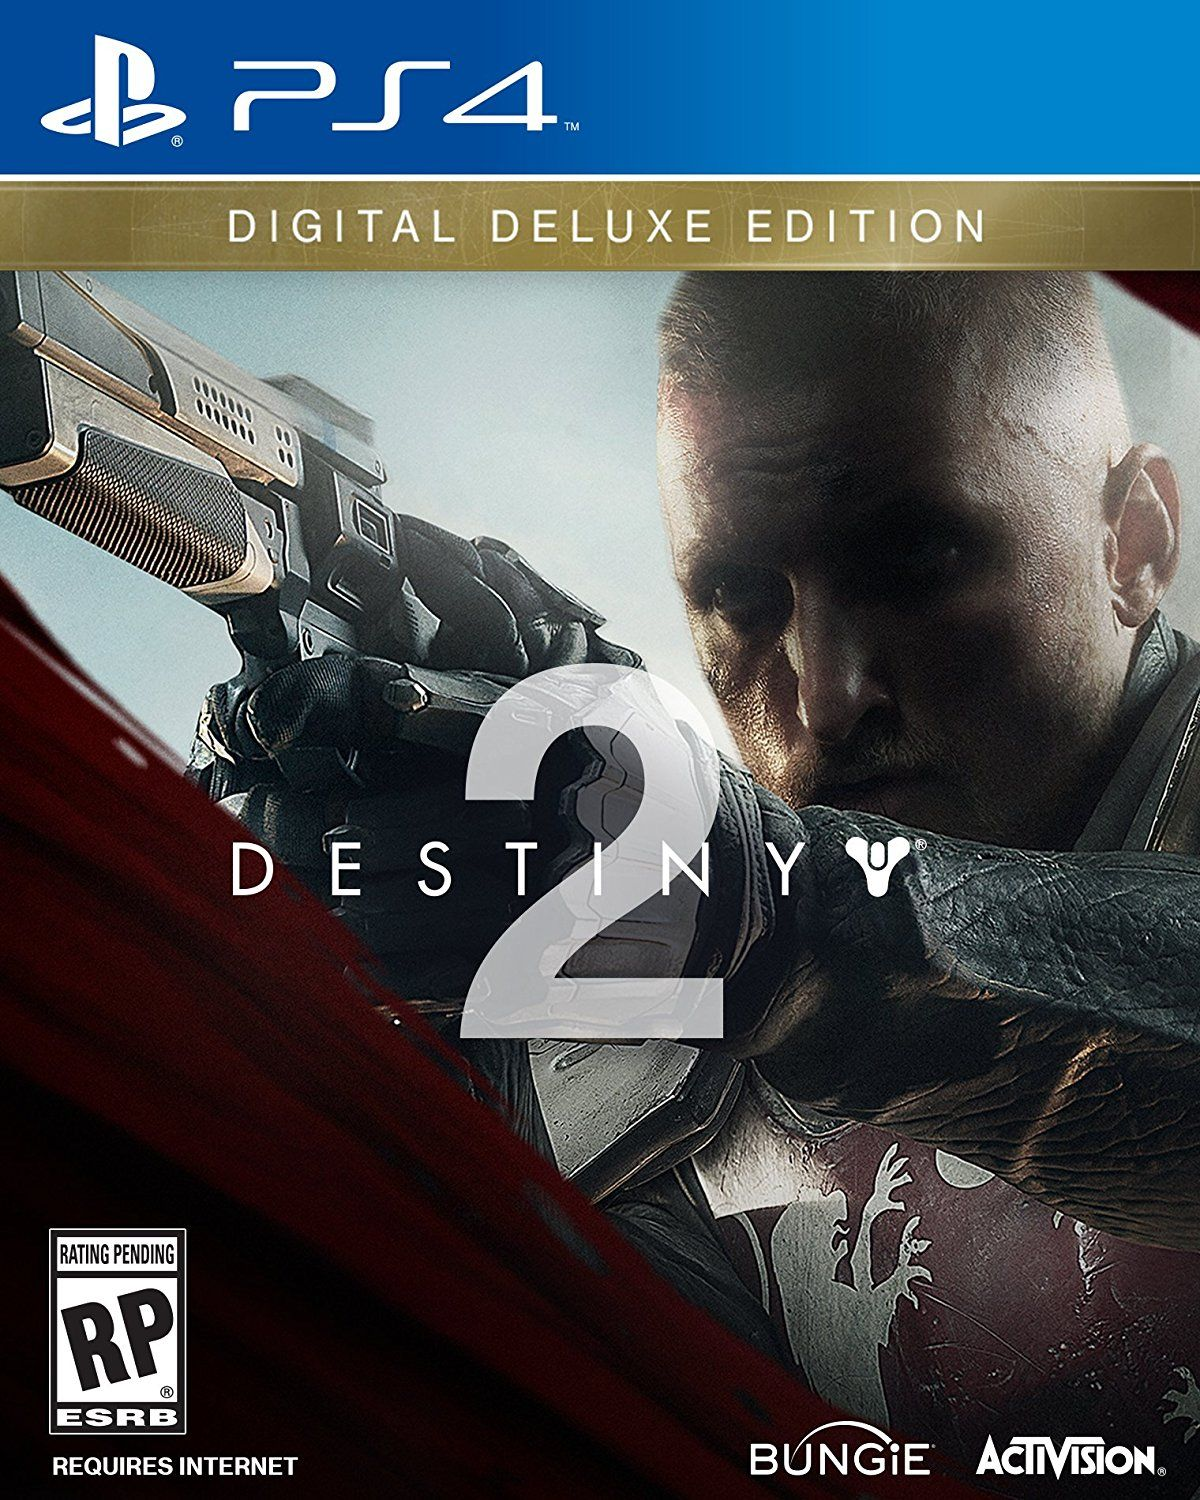 Destiny 2 Game Cover Ps4 Digital Deluxe Edition Video Games Injustice